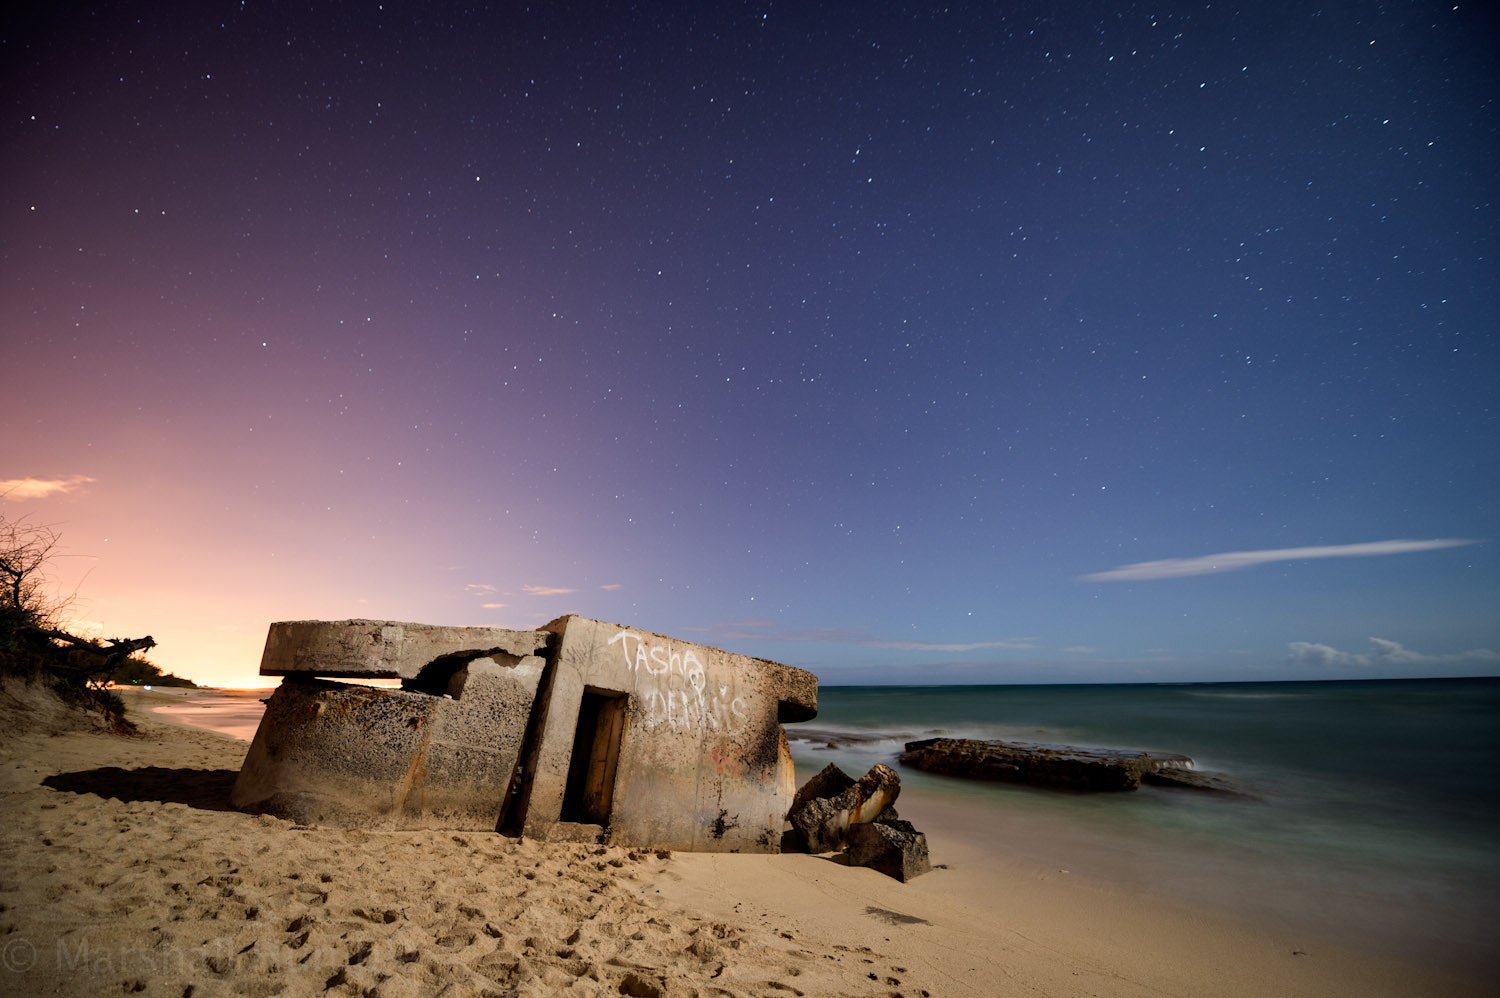 Photograph Bunker by Marshall Humble on 500px